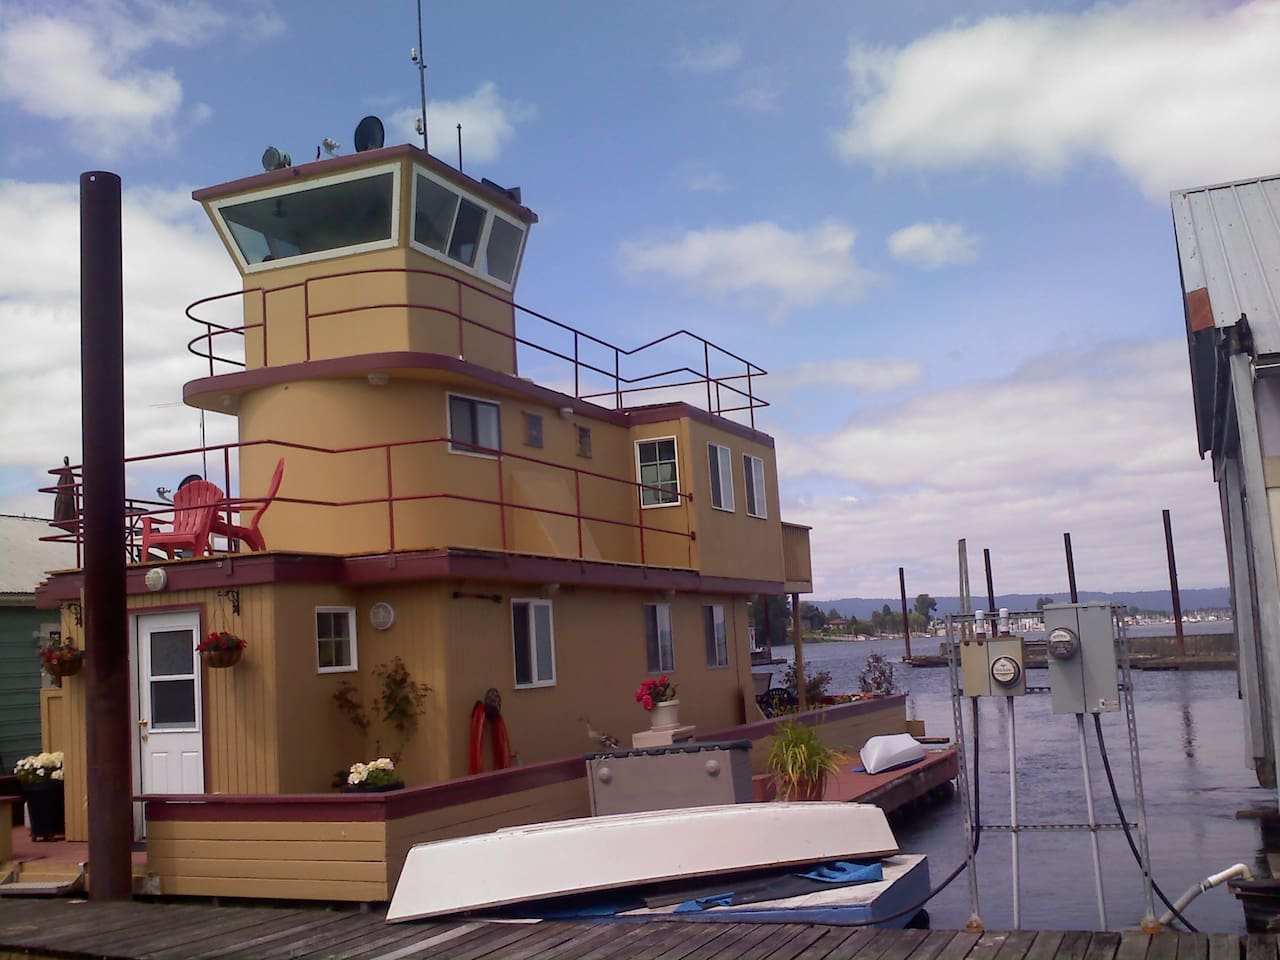 Tugboat house on the Columbia River